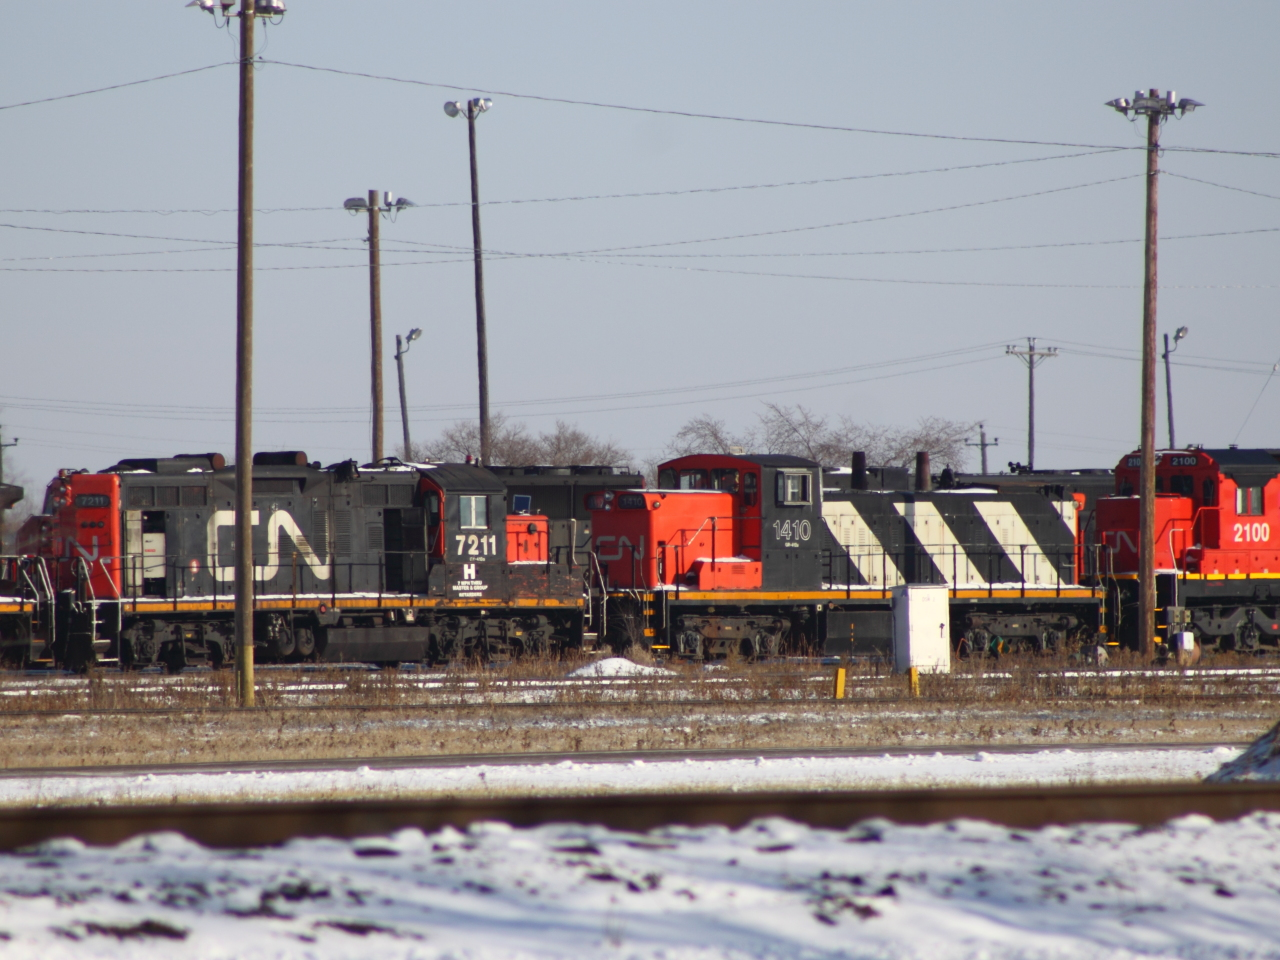 CN 7211, 1410 and 2100 in Winnipeg, MB 2011/11/21